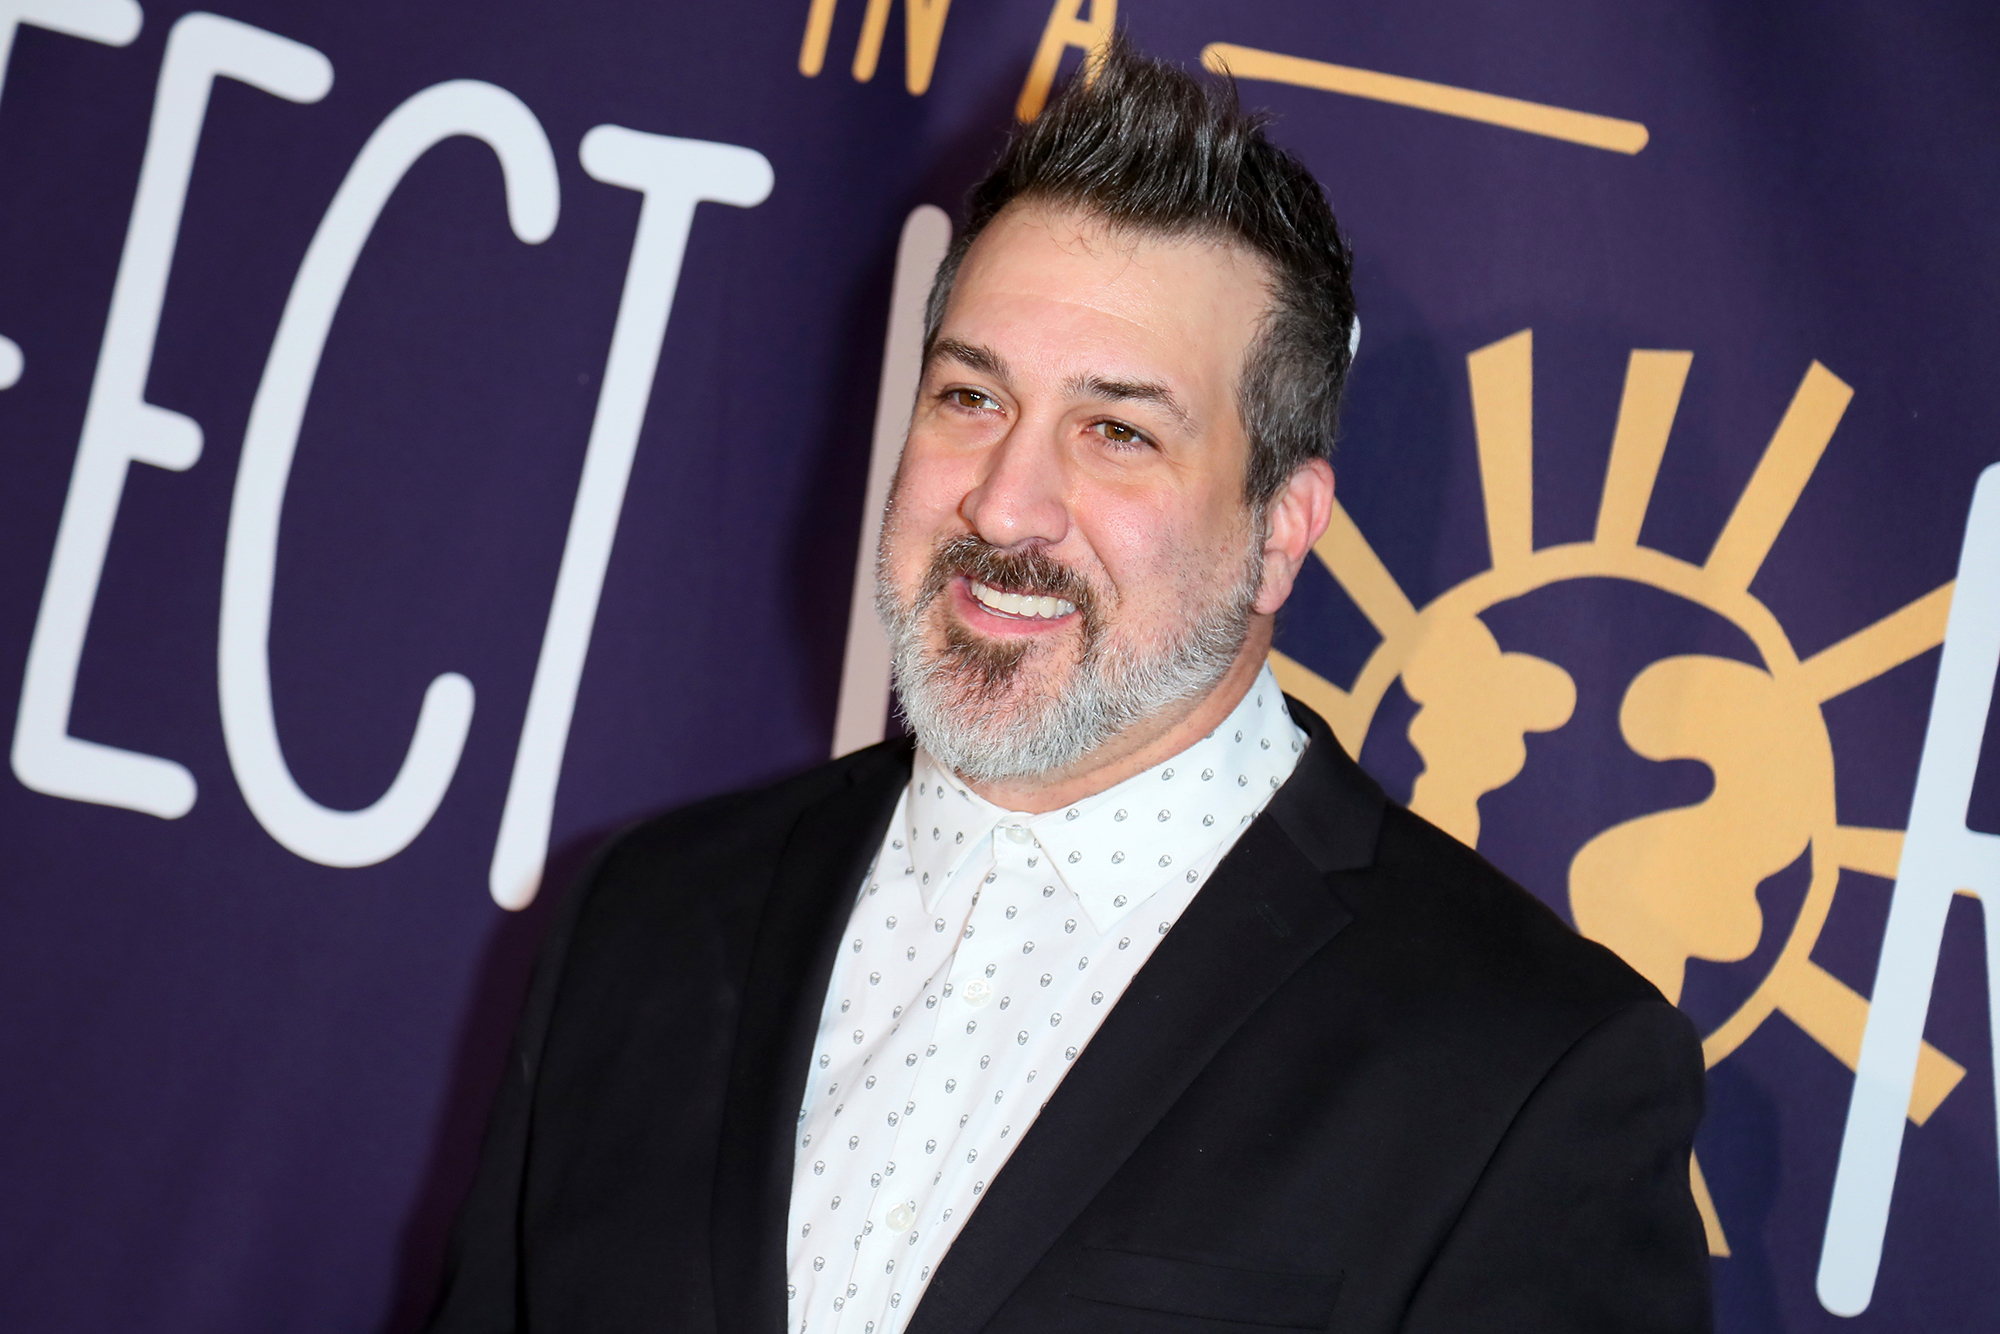 Joey Fatone Speaks About Justin Timeberlake Not at Coachella - Joey Fatone attends Manuela Testolini And Eric Bent Present An Evening Of Music, Art And Philanthropy Benefiting In A Perfect World Honoring Prince at The Jeremy Hotel on March 03, 2019 in West Hollywood, California.